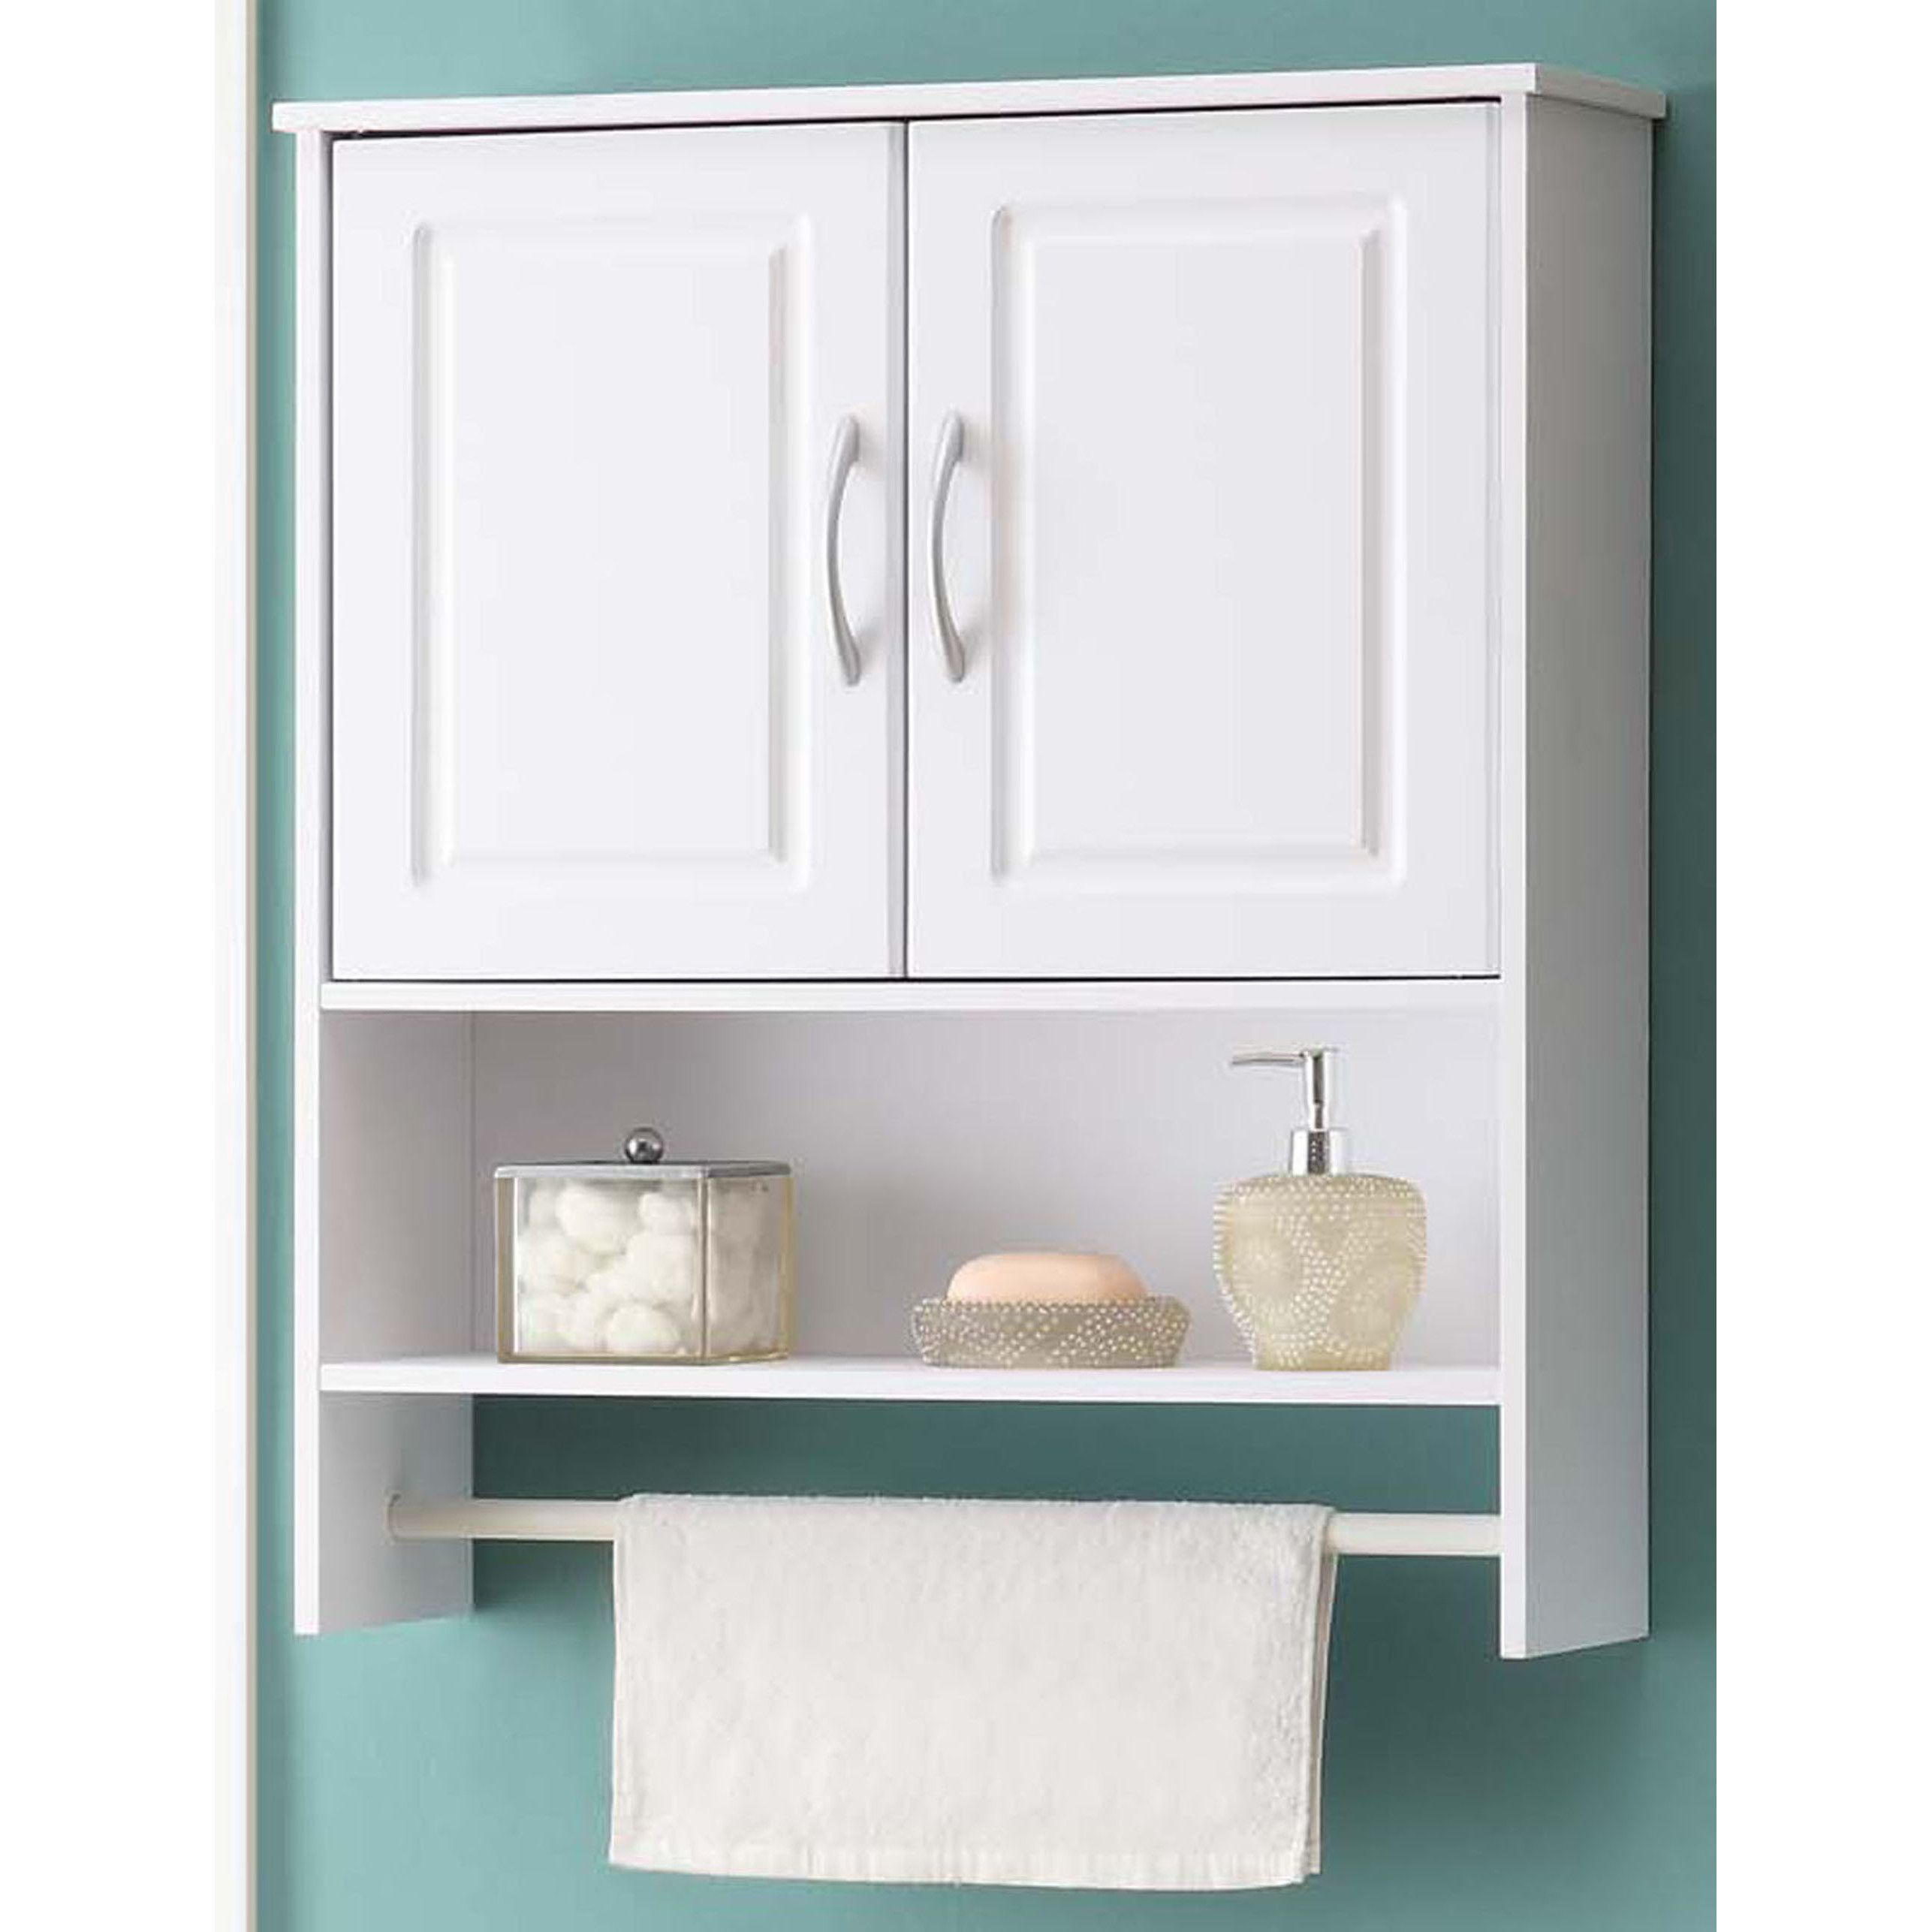 4D Concepts Maisy Wall-Mount Cabinet | Bathroom | Pinterest | Wall ...